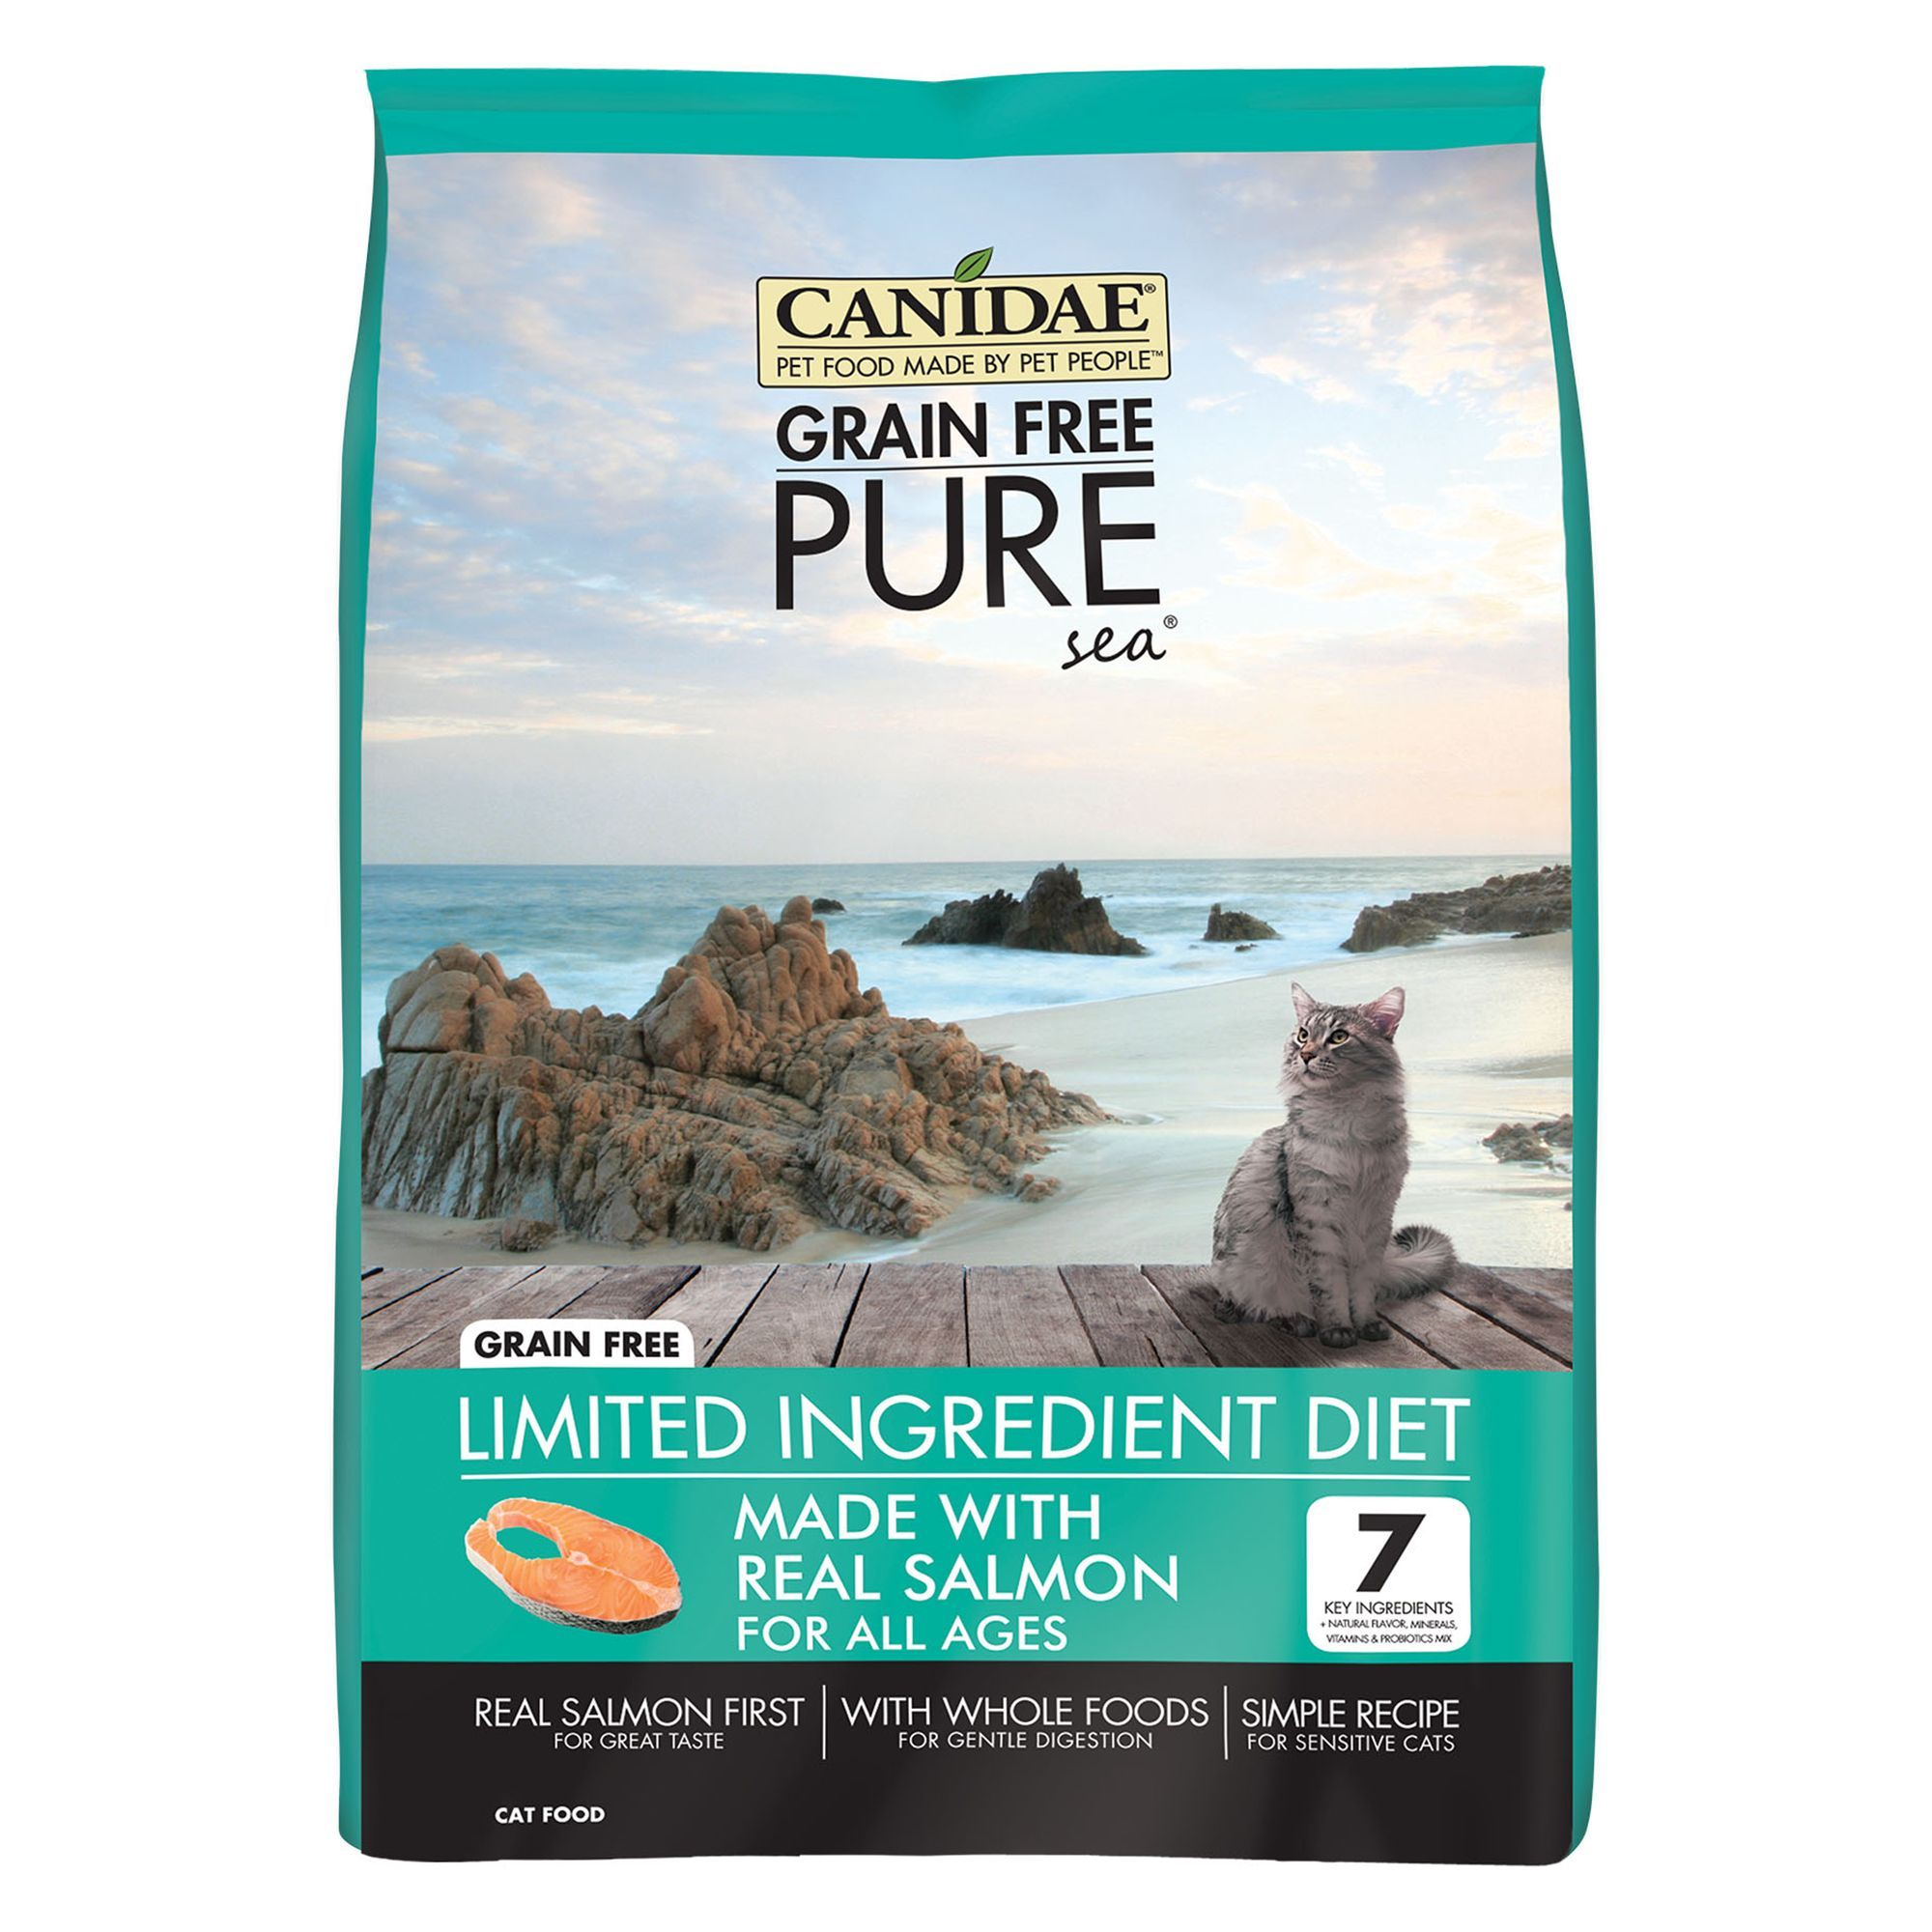 CANIDAE Pure Cat Food Limited Ingredient Diet, Natural